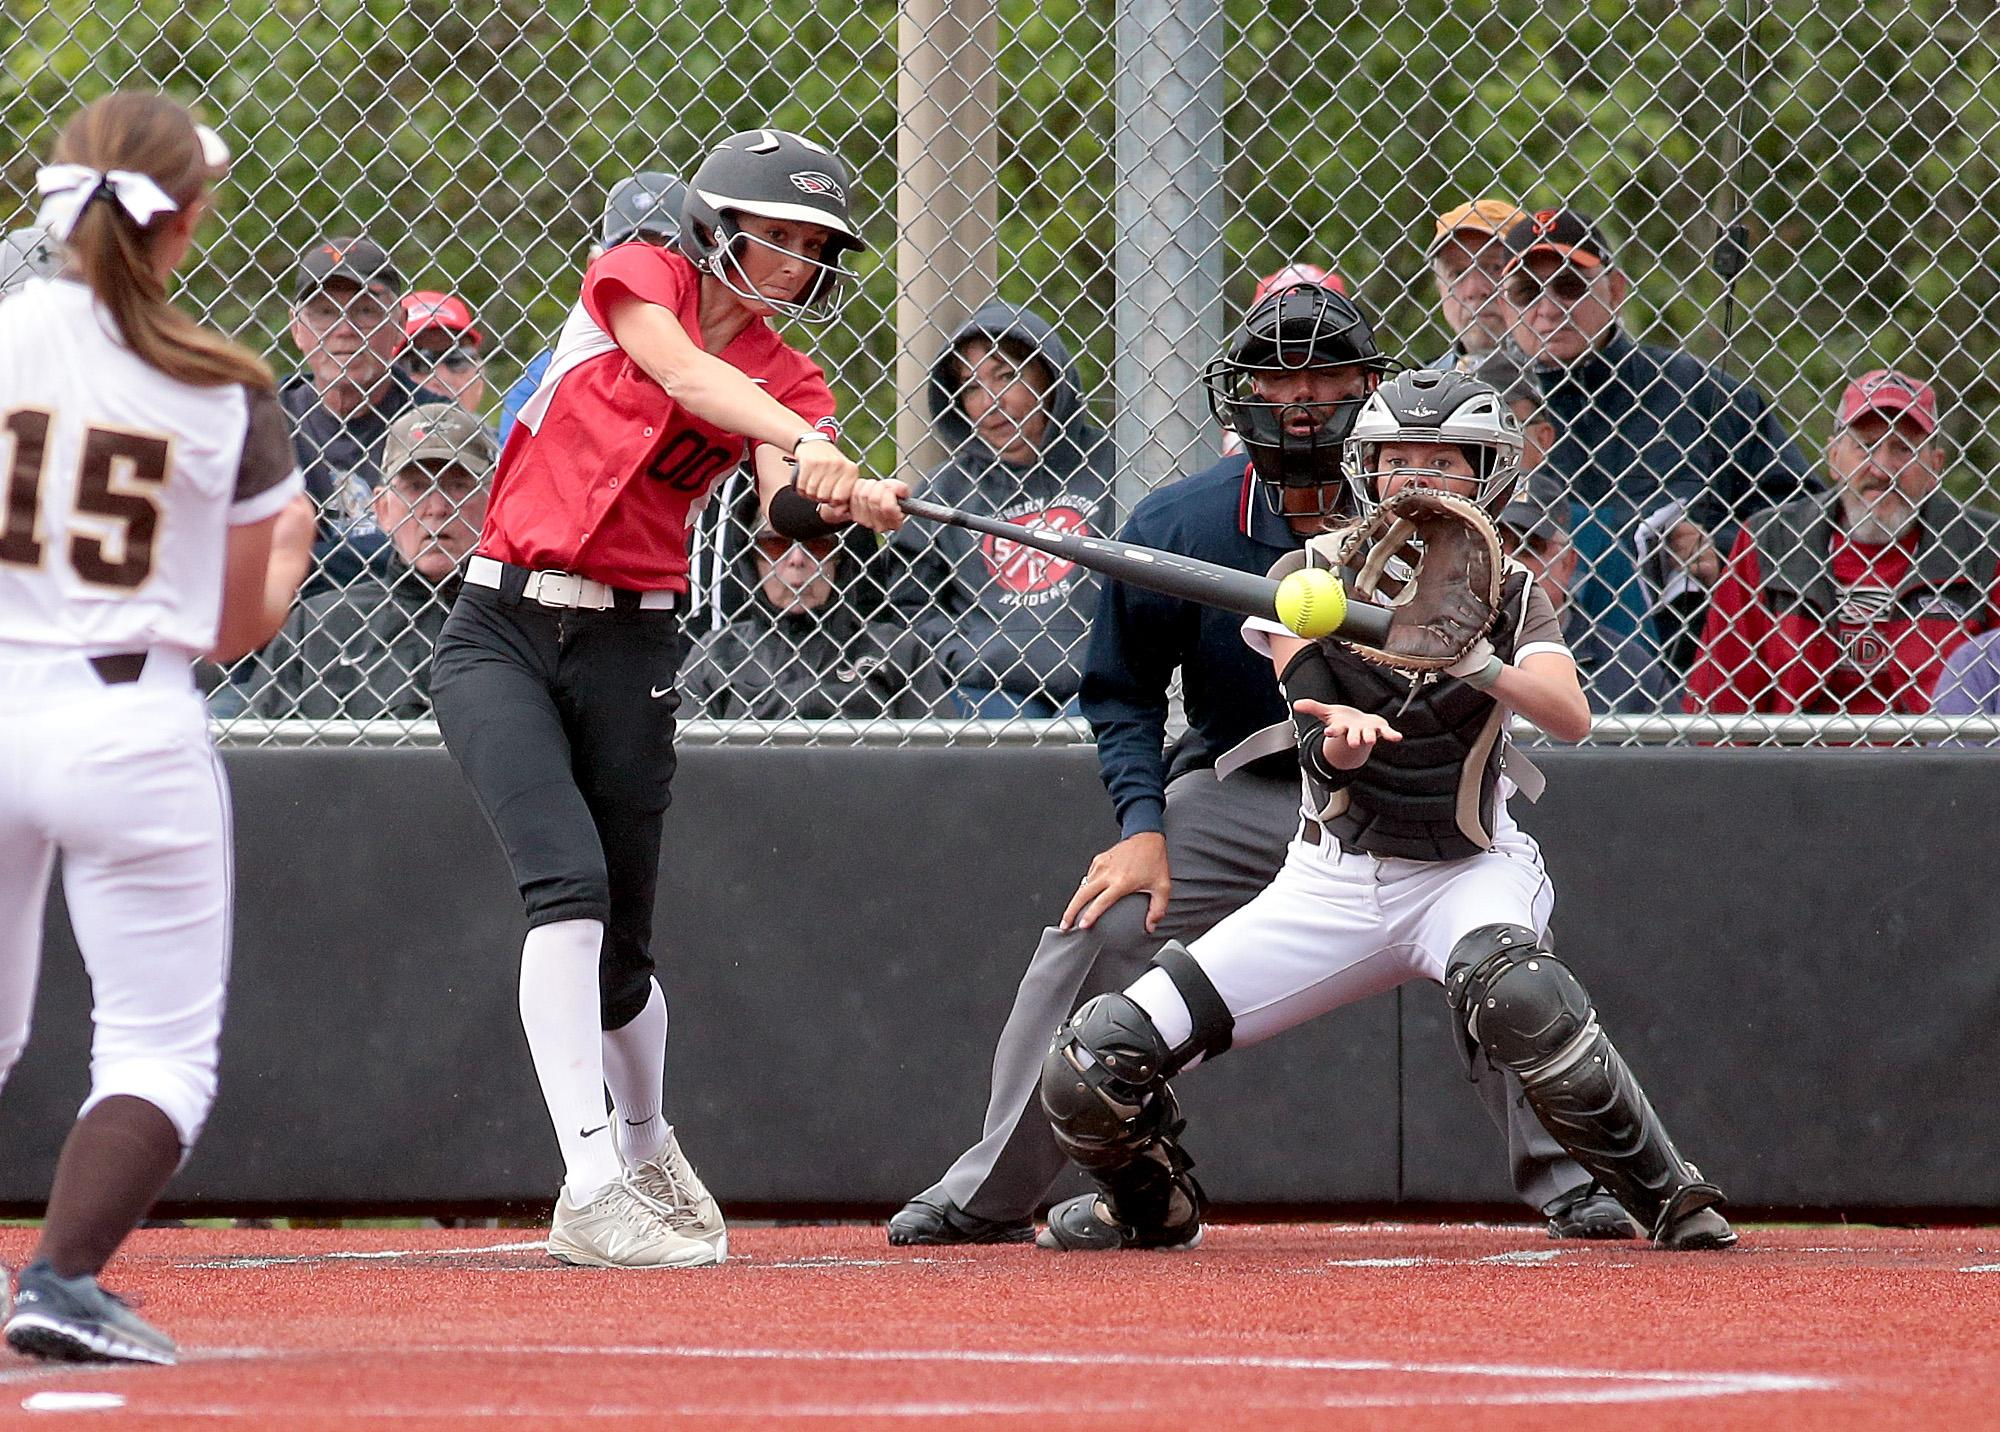 Southern Oregon University freshman Hannah Shimek unloads on the pitch from St. Francis RHP Morgan Dieringer at US Cellular Community Park on Wednesday.[PHOTO BY:  LARRY STAUTH JR]